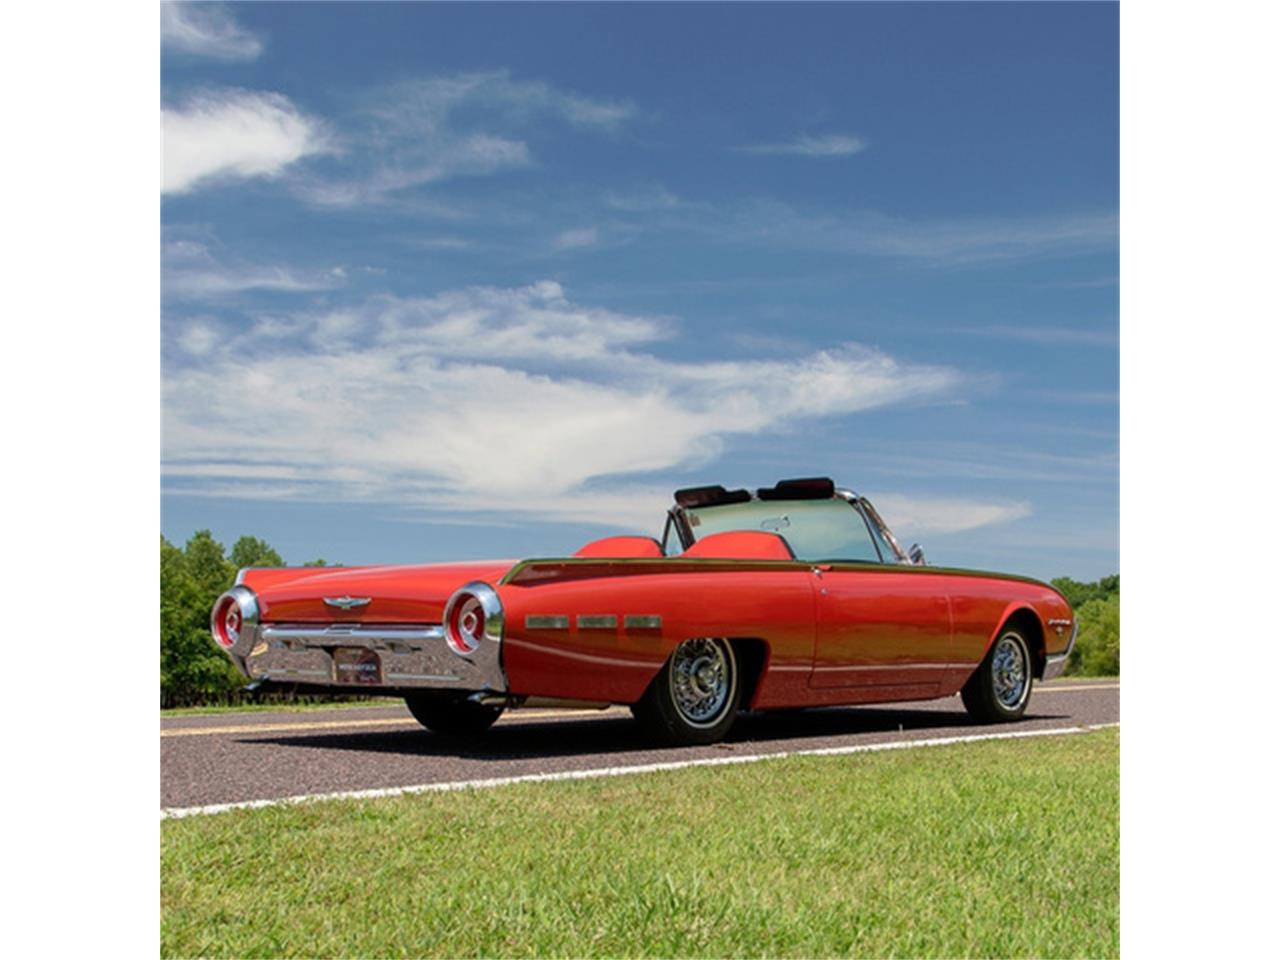 Large Picture of 1962 Ford Thunderbird located in St. Louis Missouri - $27,500.00 - QXLJ